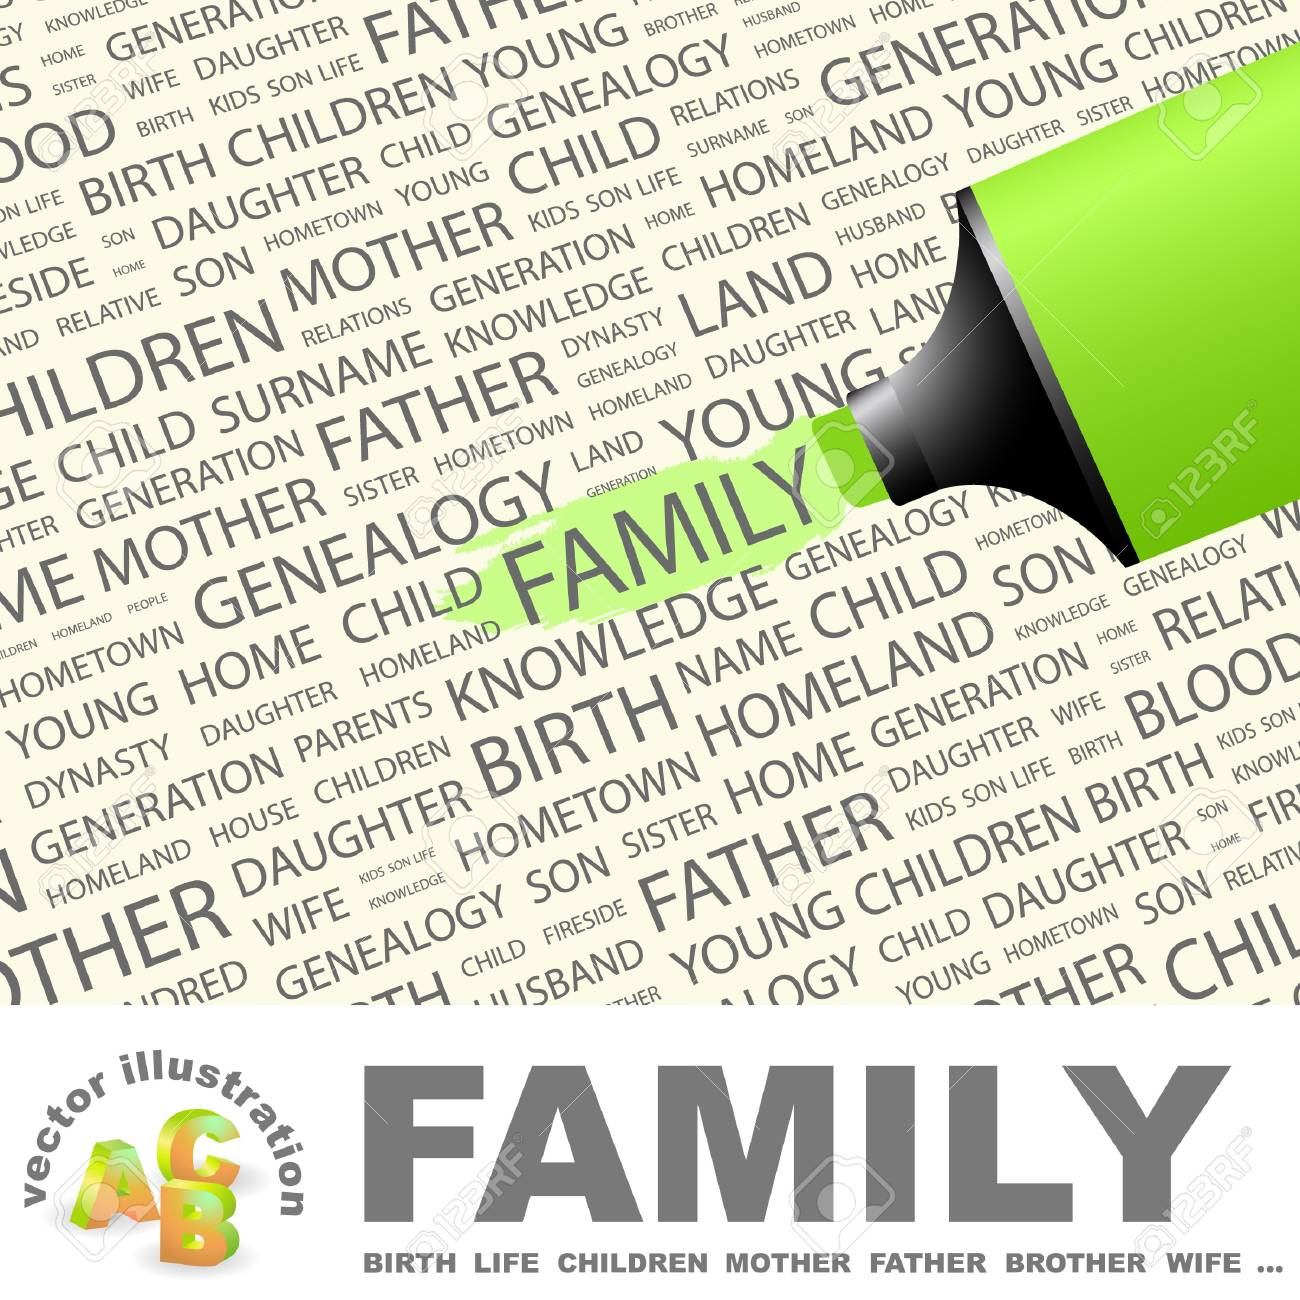 FAMILY. Highlighter over background with different association terms. Vector illustration. Stock Vector - 9399170